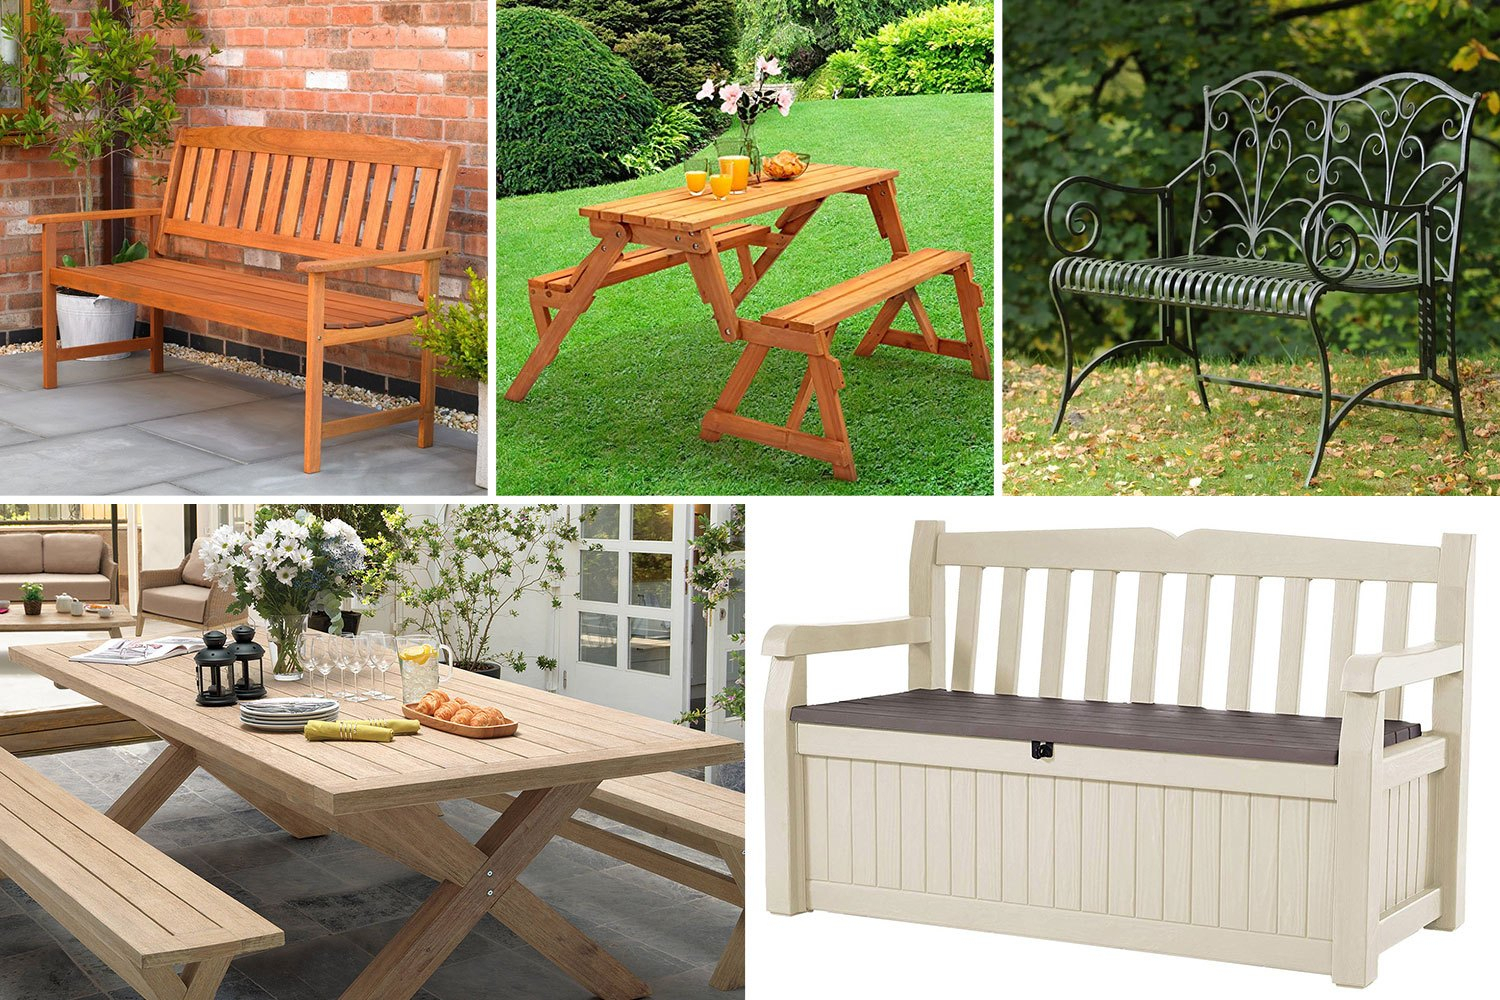 Best Garden Bench 2019: From Wooden To Metal Designs, With With Wood Garden Benches (View 17 of 25)